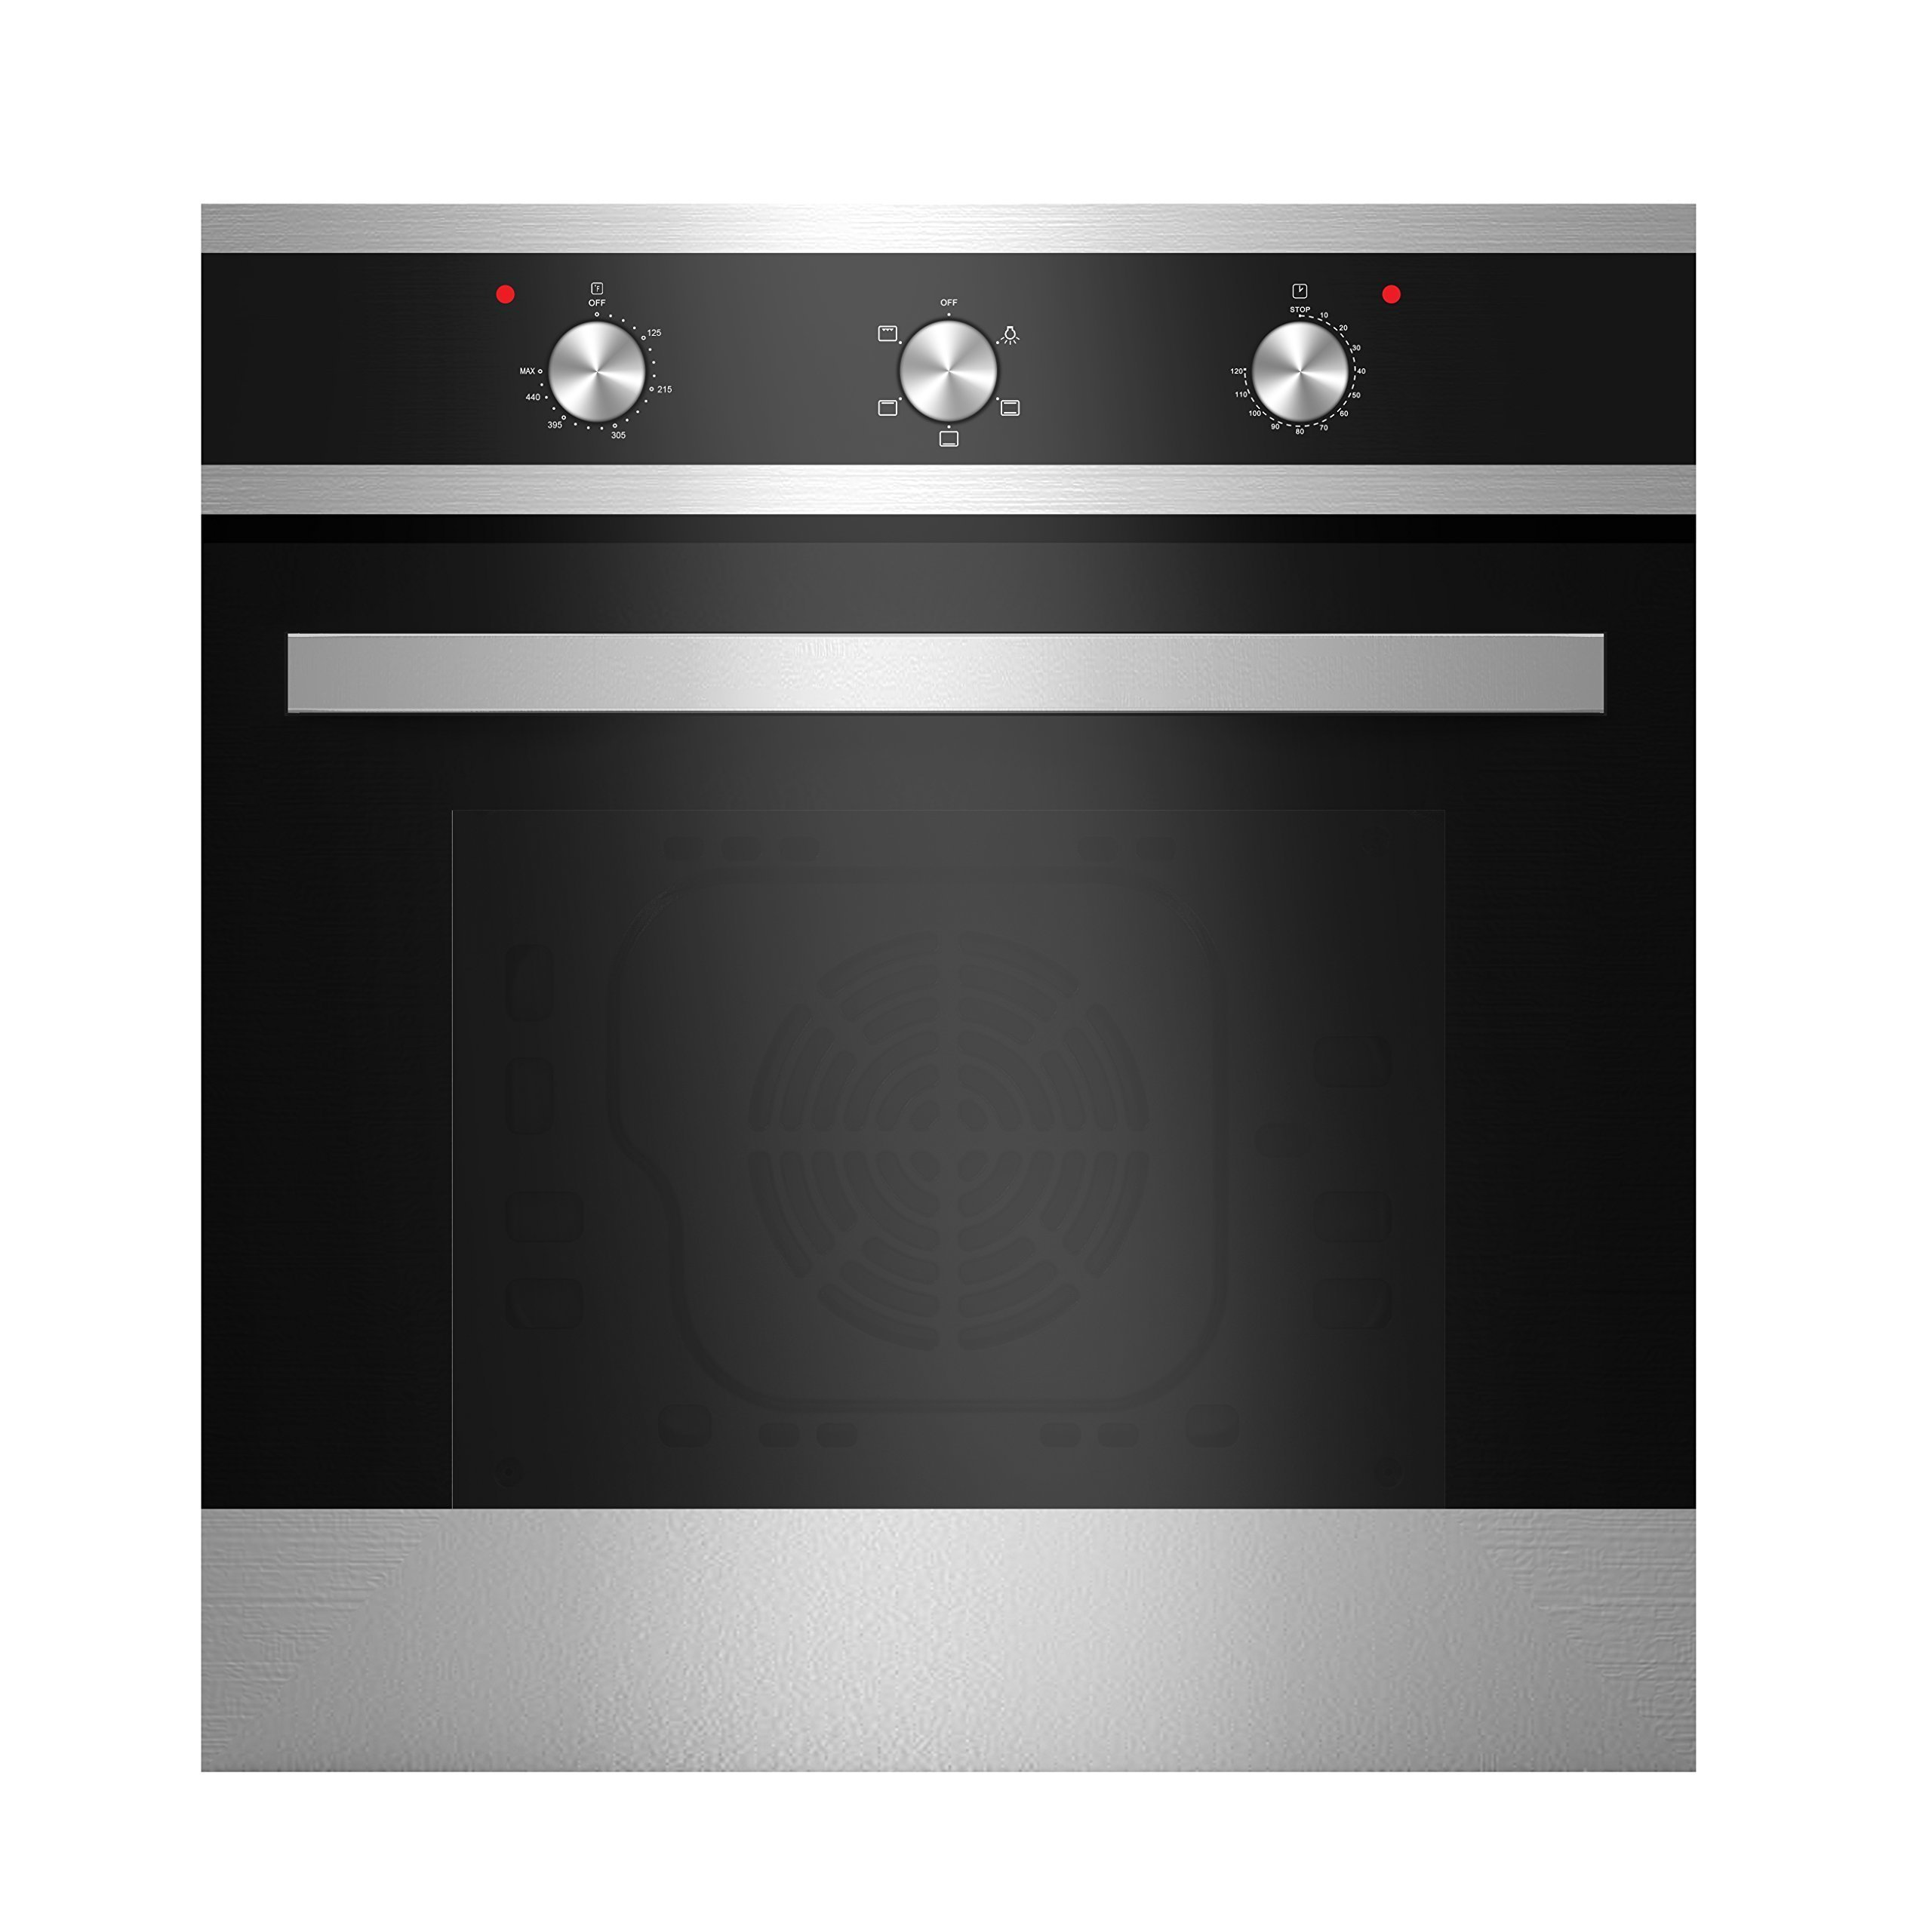 Empava 24'' Tempered Glass Electric Built-in Single Wall Oven with Broiler Function 2000W 110V, Black and Silver